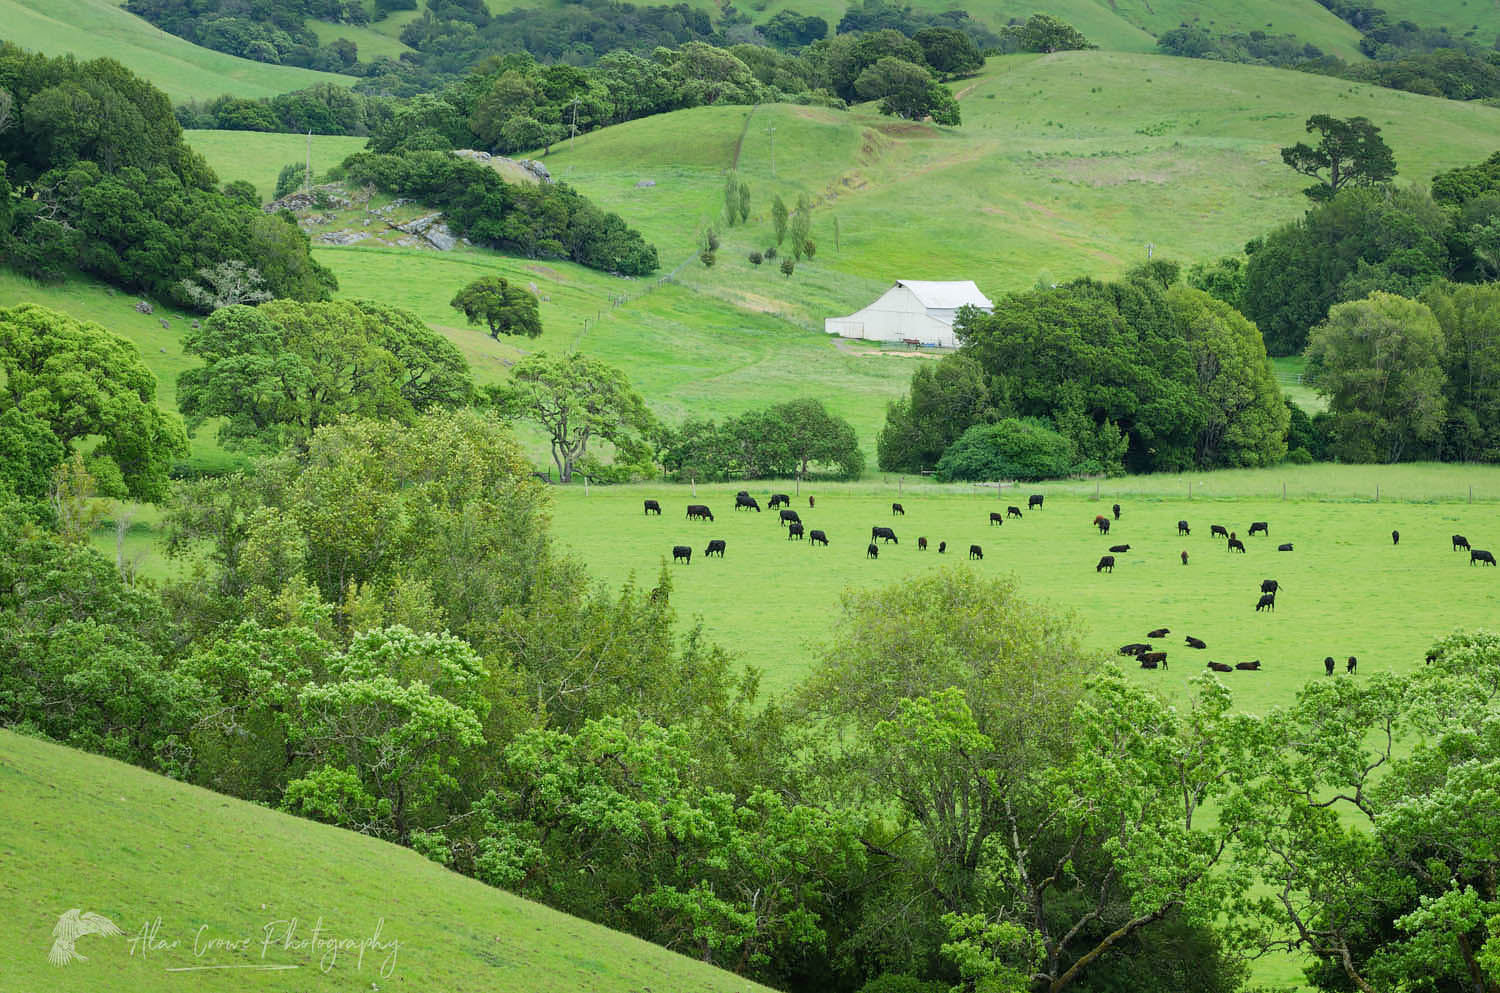 Marin County Cattle ranch California